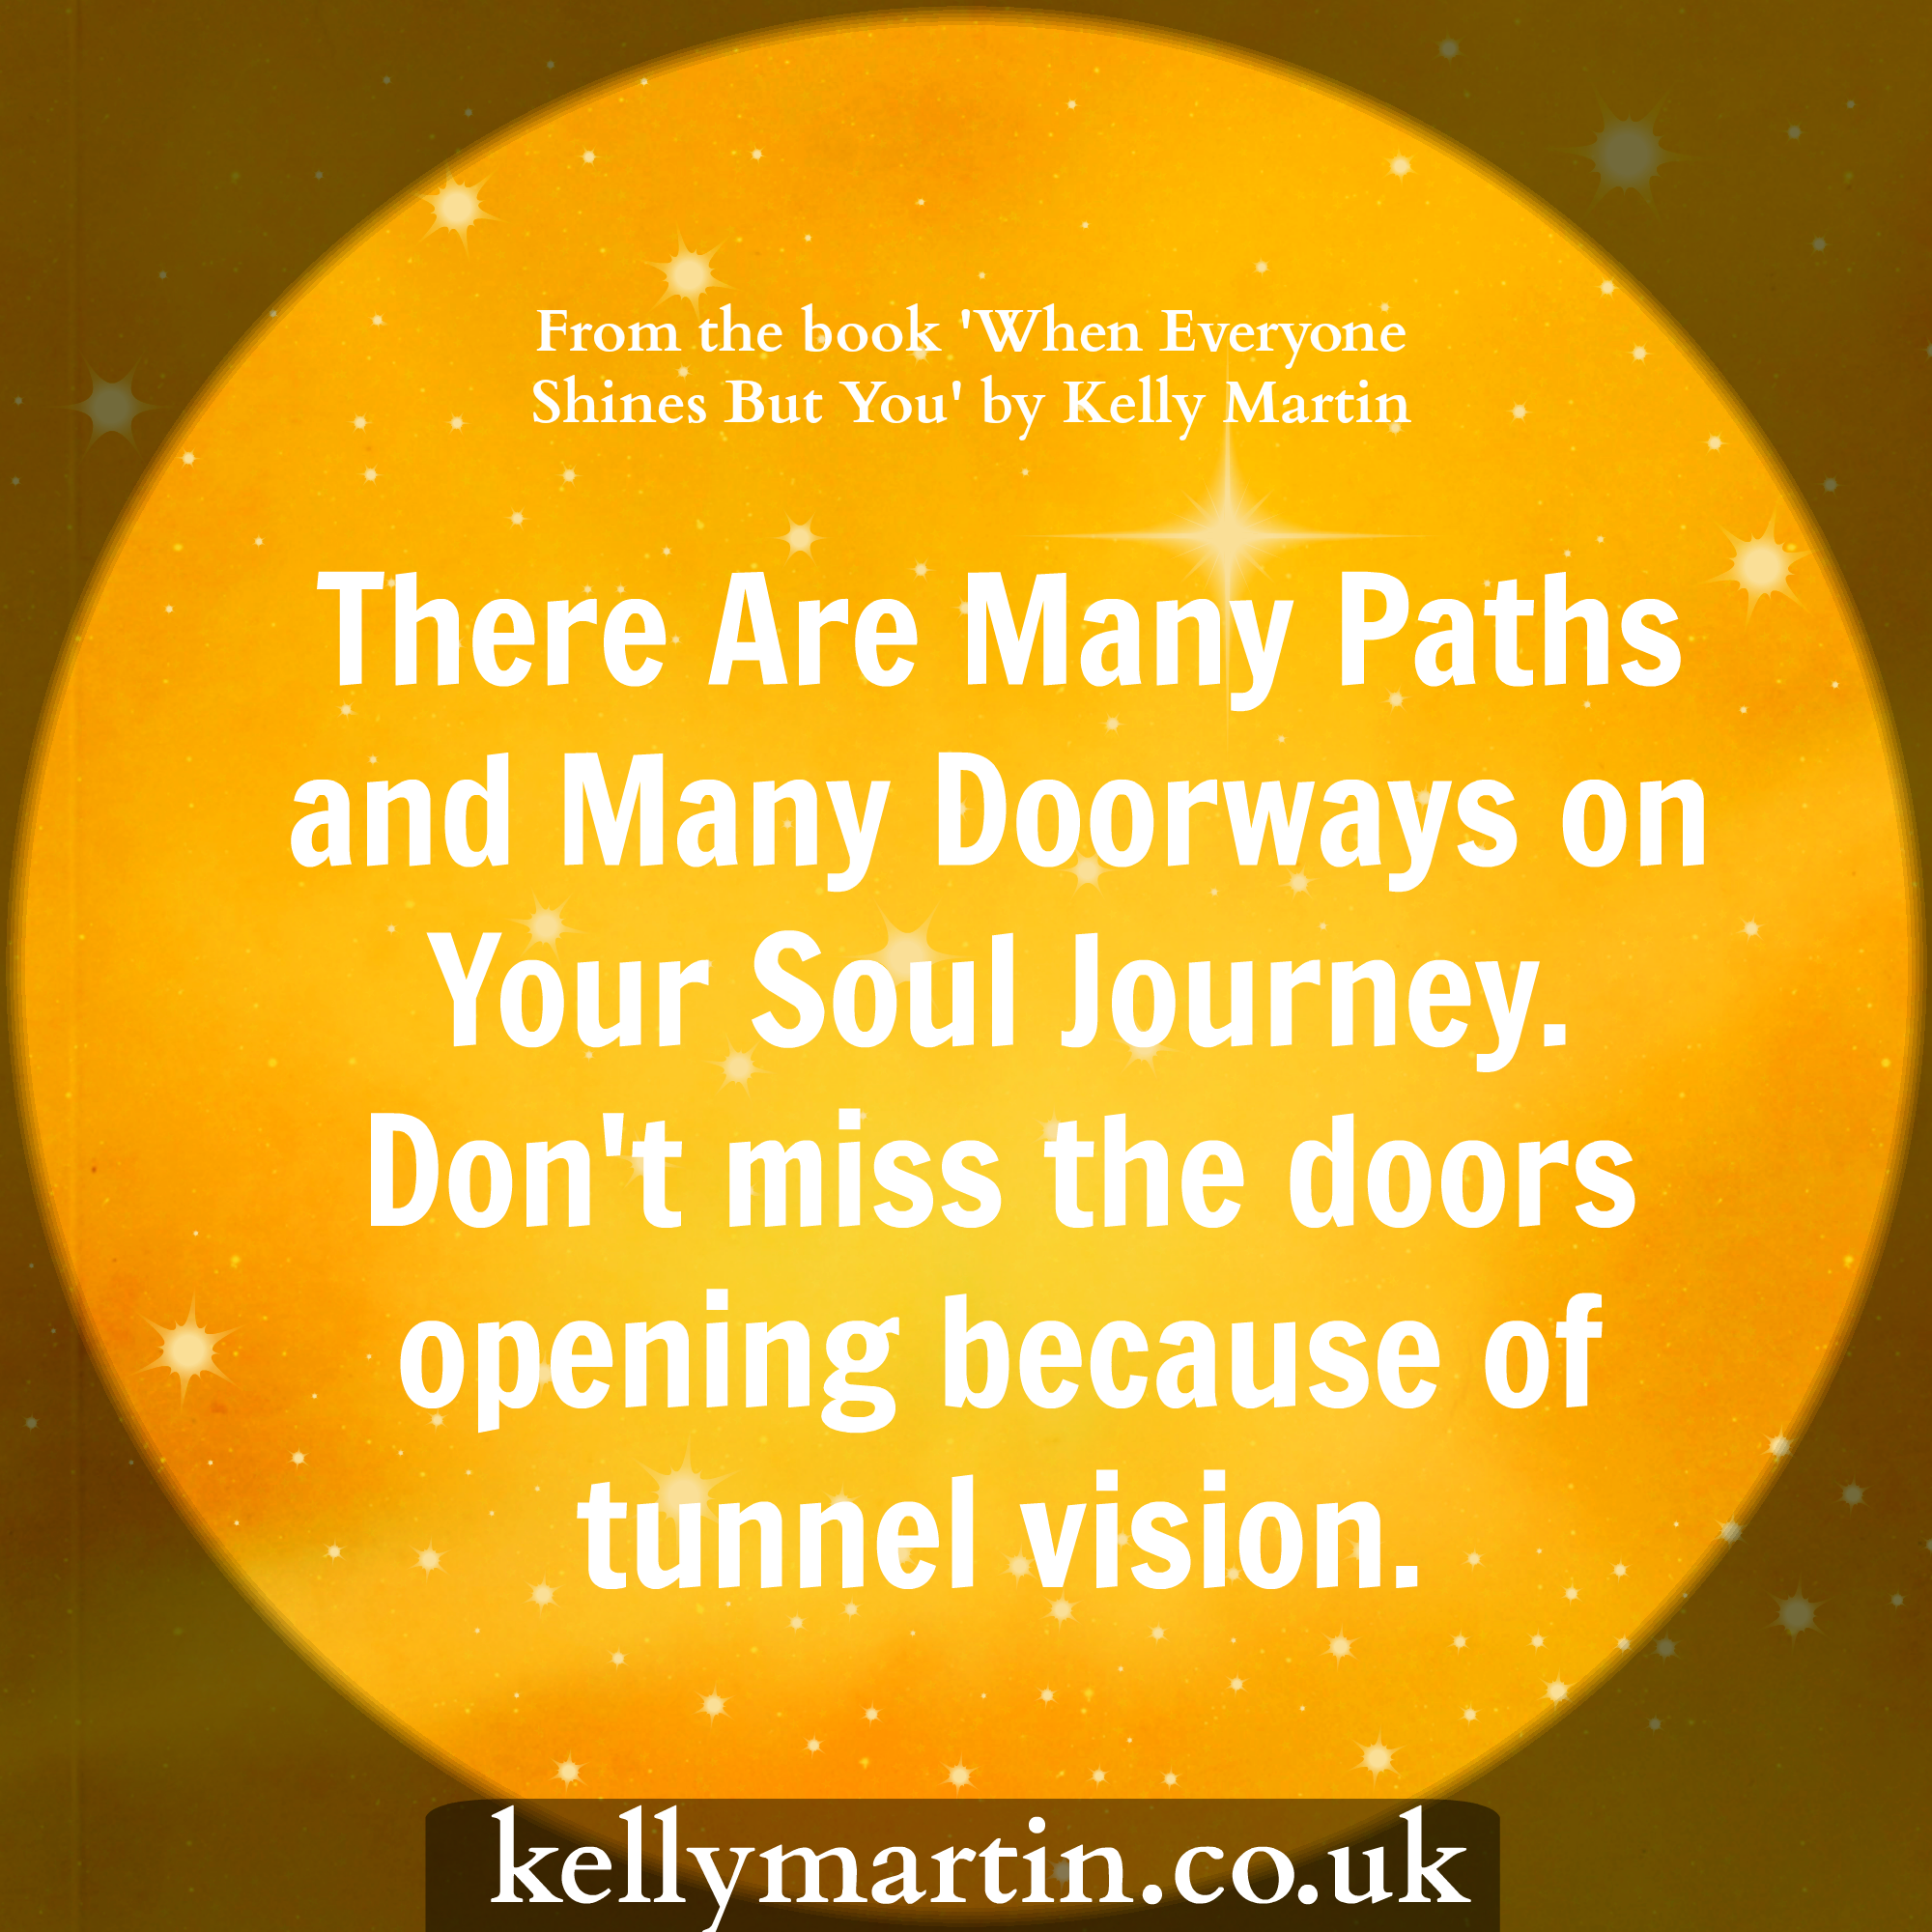 There Are Many Paths and Many Doorways on Your Soul Journey.  #quote #wisdom #soul